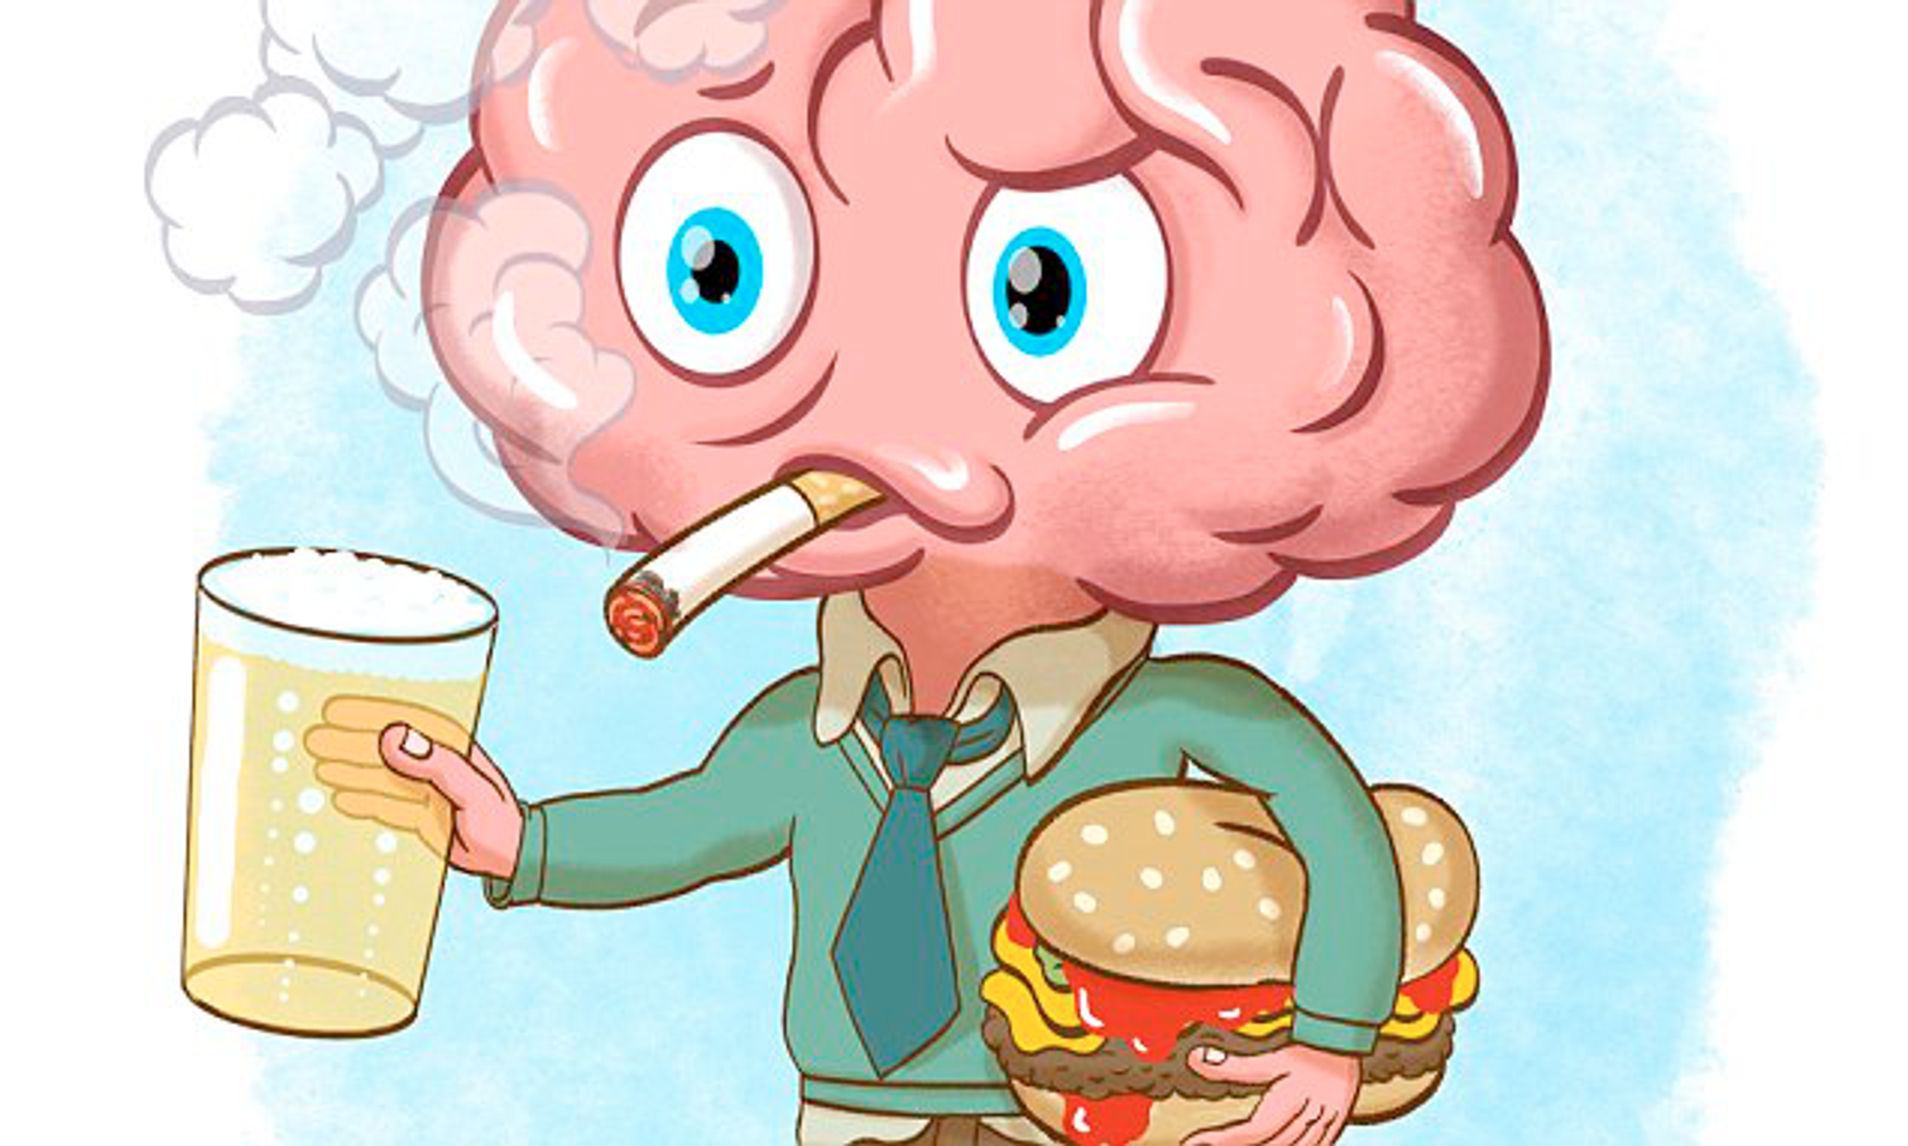 Drinking, smoking and eating too much fast food can sabotage.